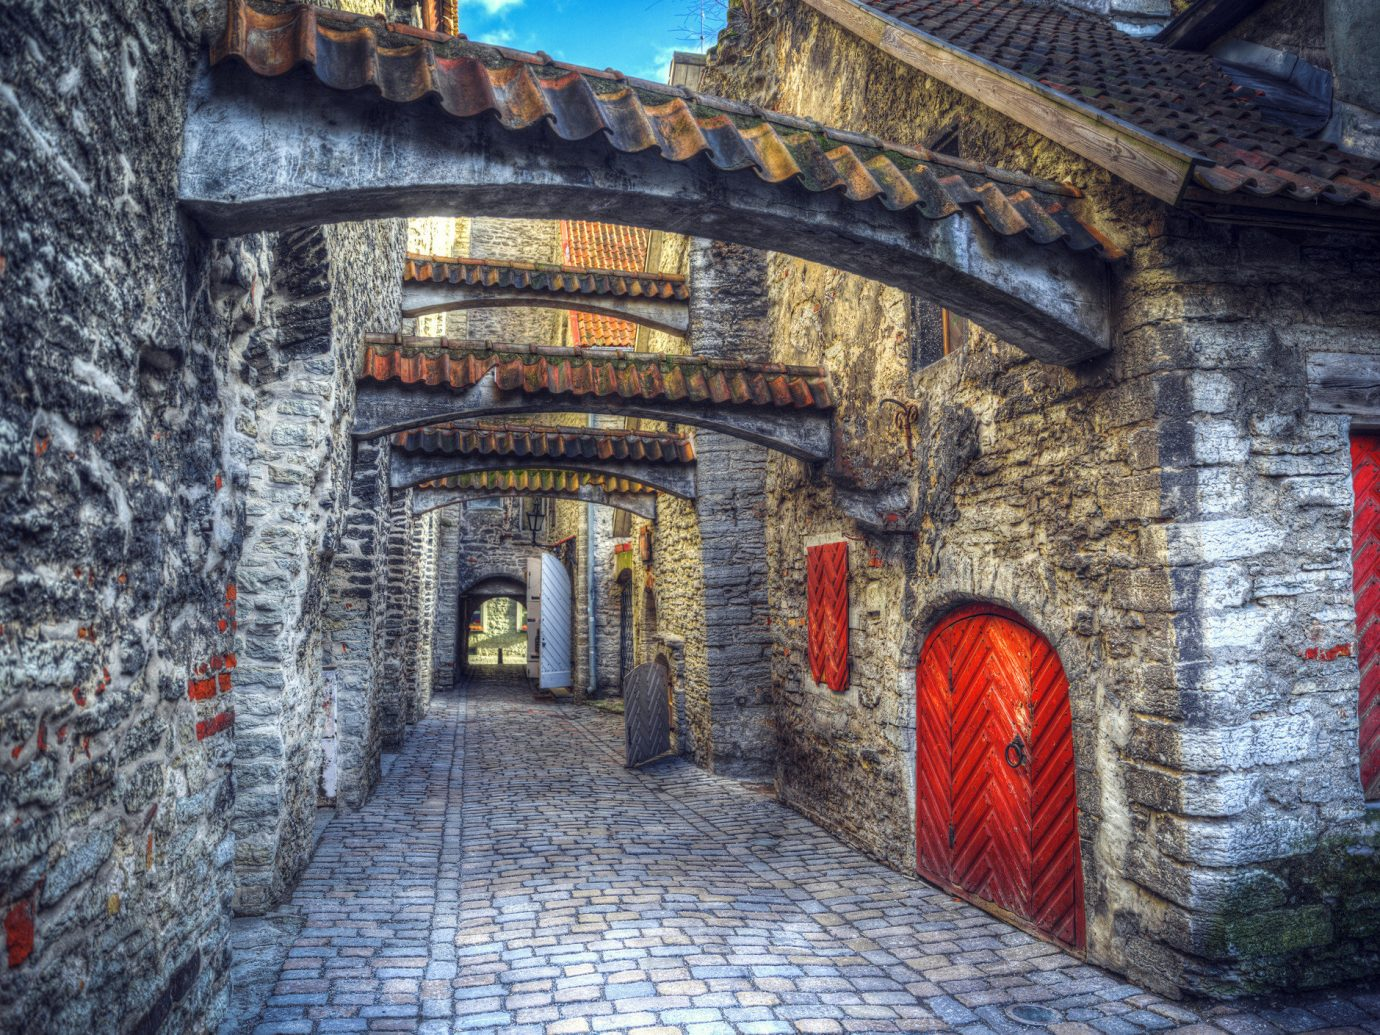 Trip Ideas stone Town urban area building wall alley Architecture street art arch brick ancient history temple Ruins shrine monastery